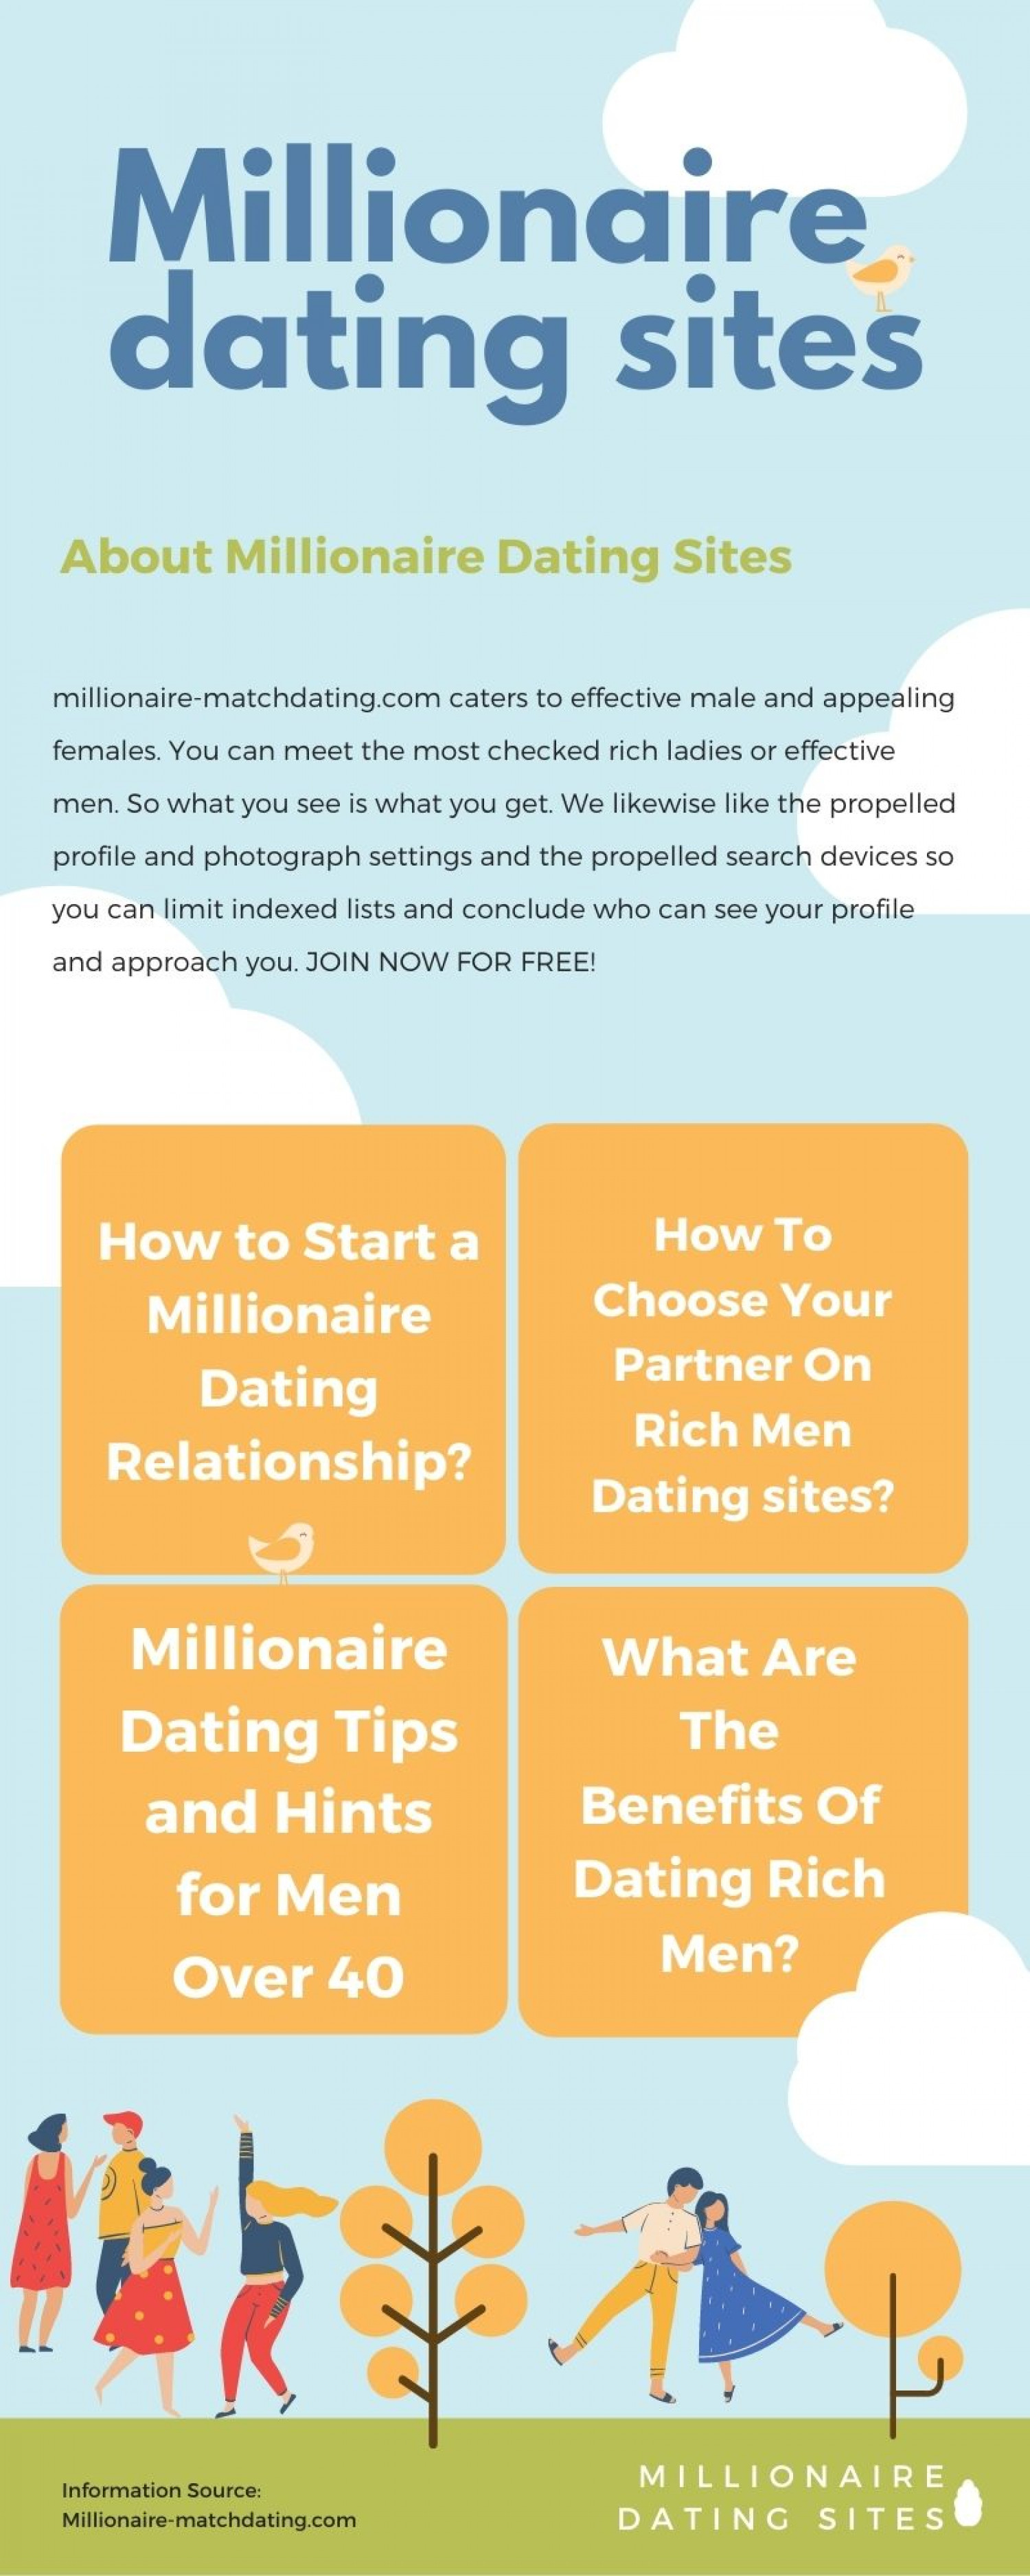 Top millionaire dating sites Infographic